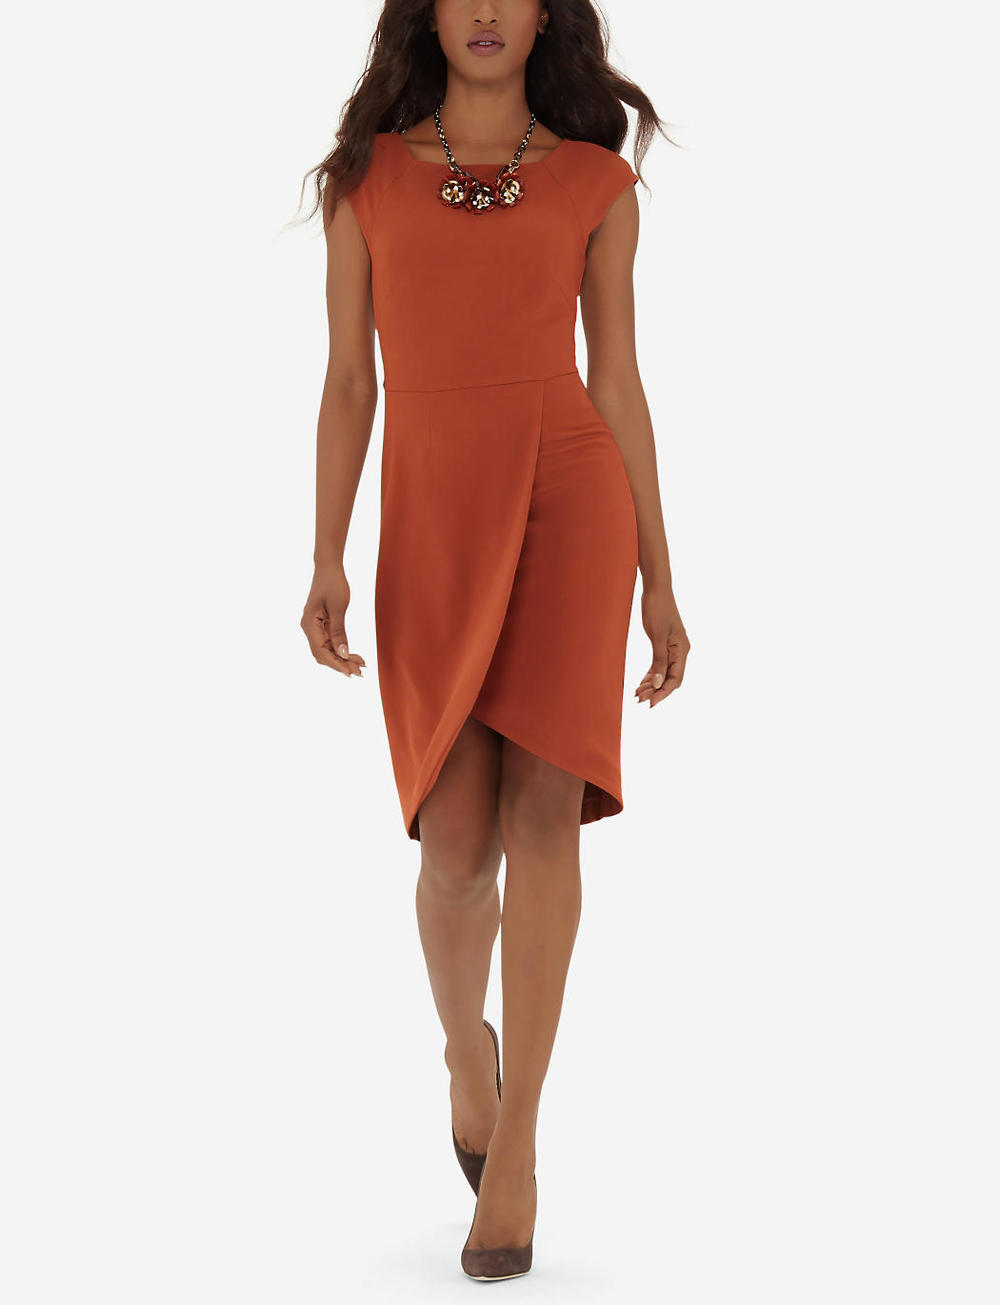 Tall Tulip Skirt Sheath Dress. The Limited. Was: $109 Now: $76.